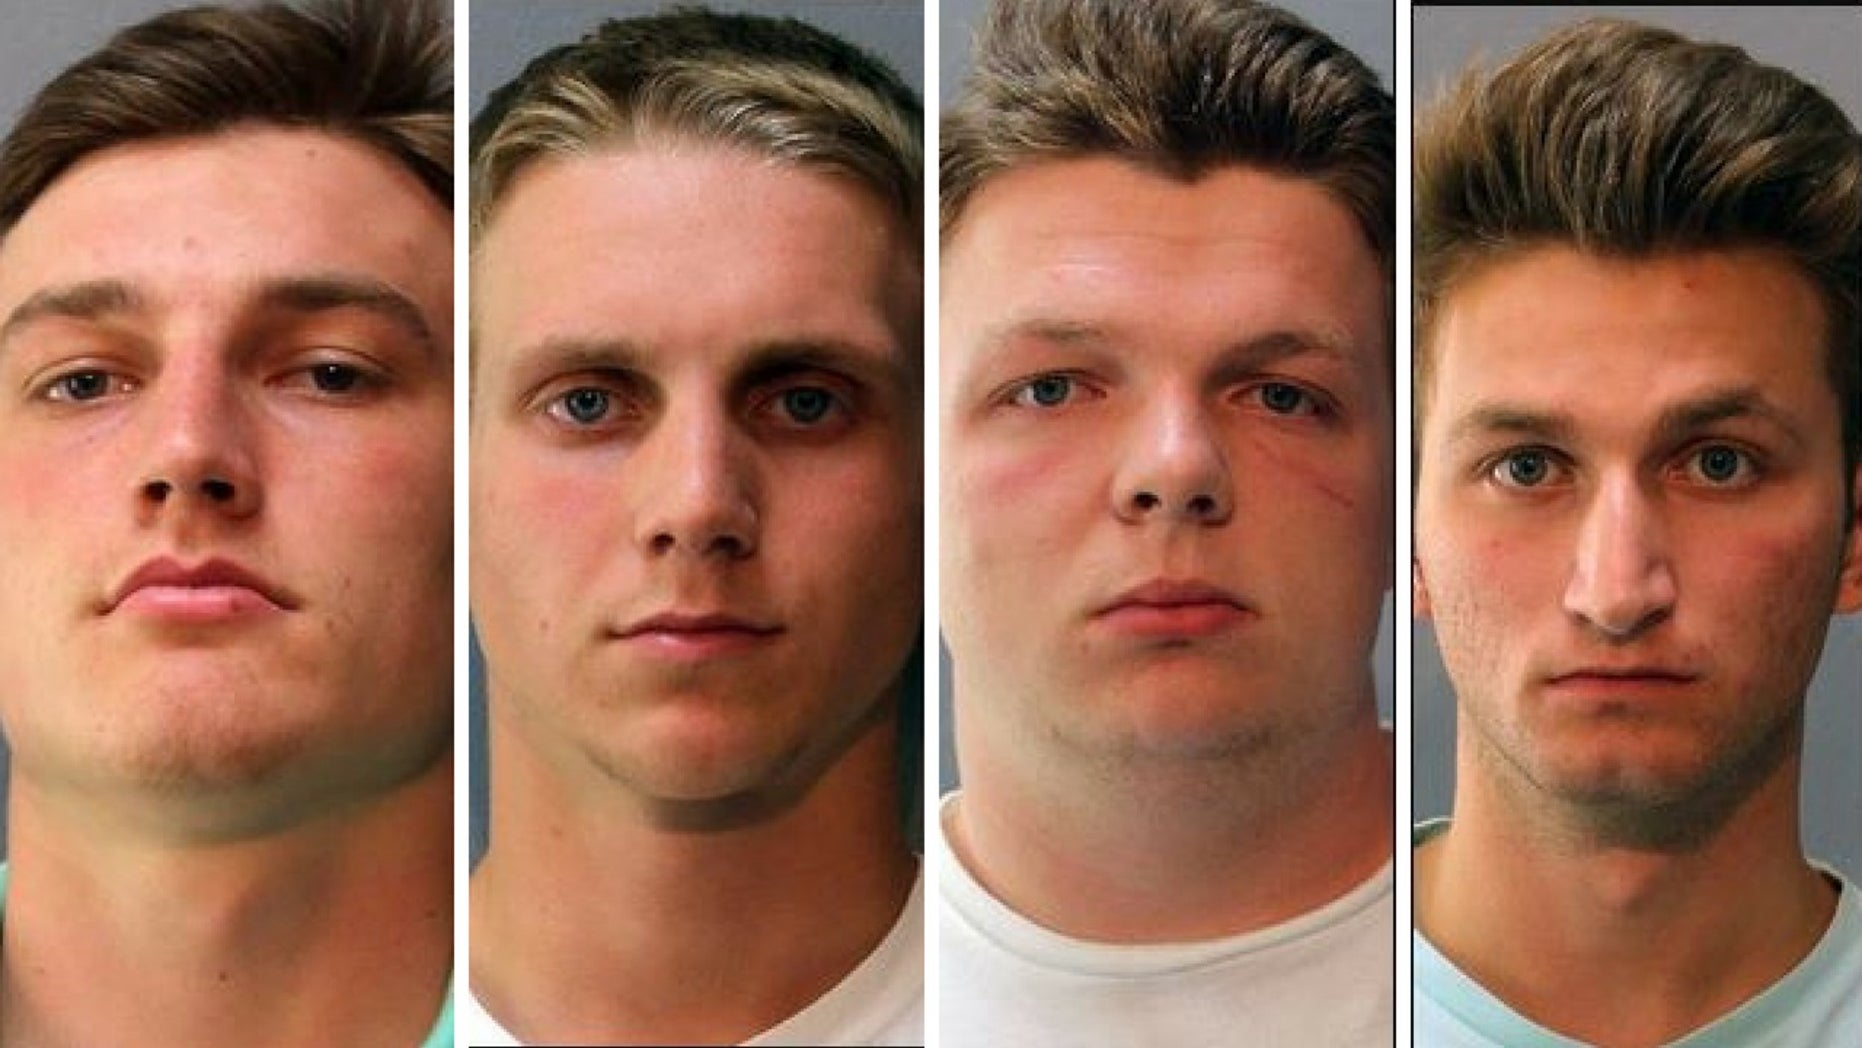 From left to right: Joshua Shaffer, Tyler Curtiss, Seth Taylor and Matthew Lipp were charged with hate crimes after racist graffiti were found spray-painted at Glenelg High School.